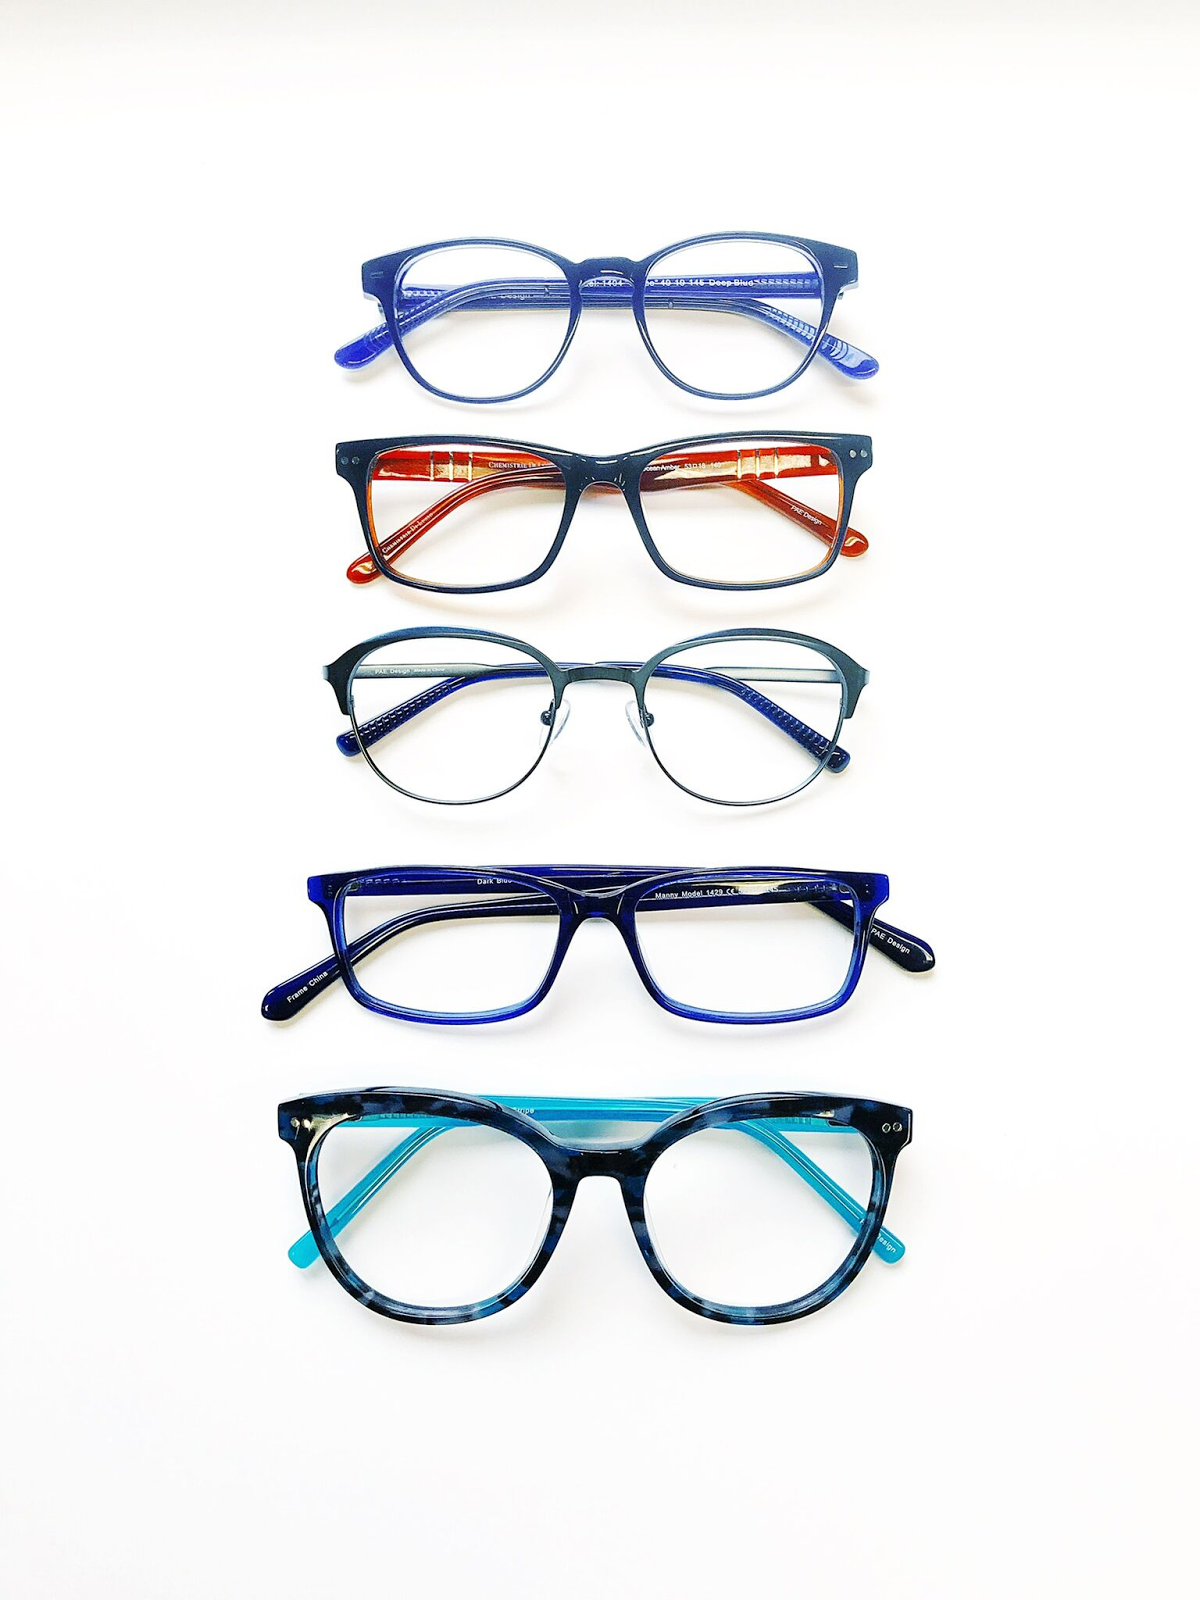 Wear the Perfect Glasses